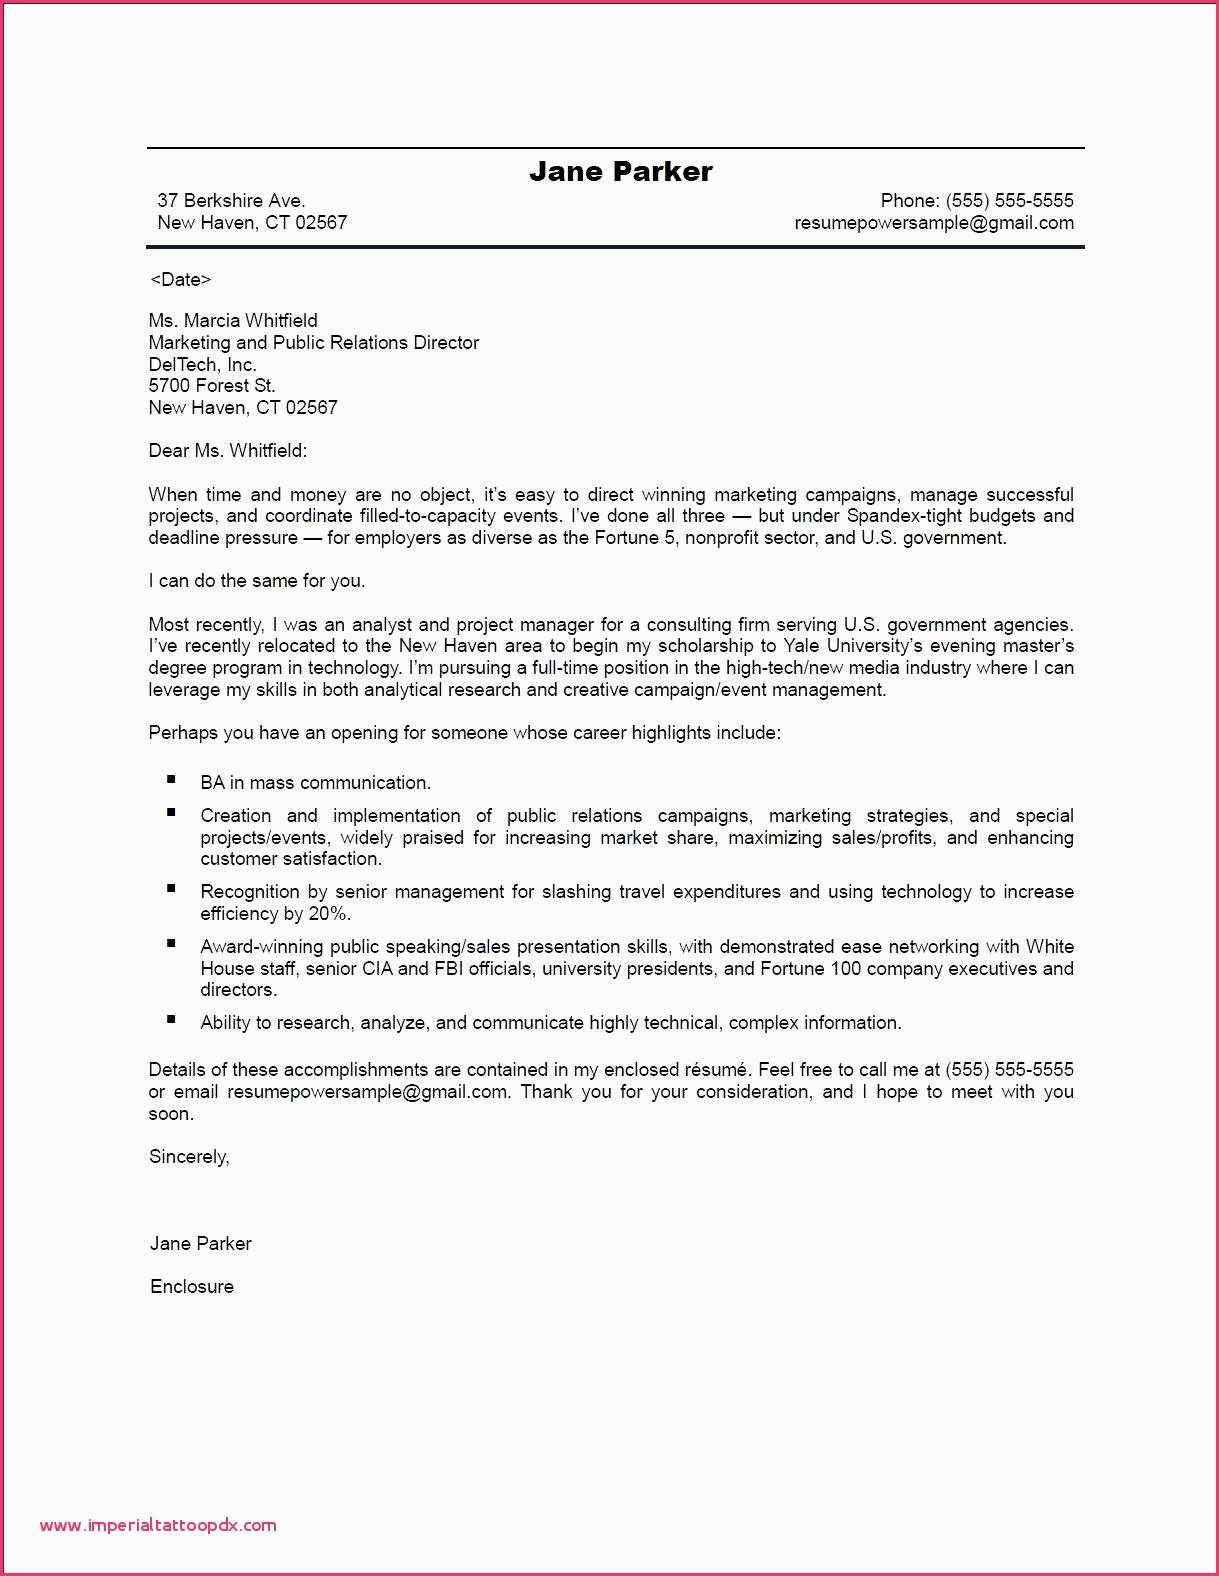 Fbi Resume - Sample Resume for Information Technology Sales Creative Cover Letter